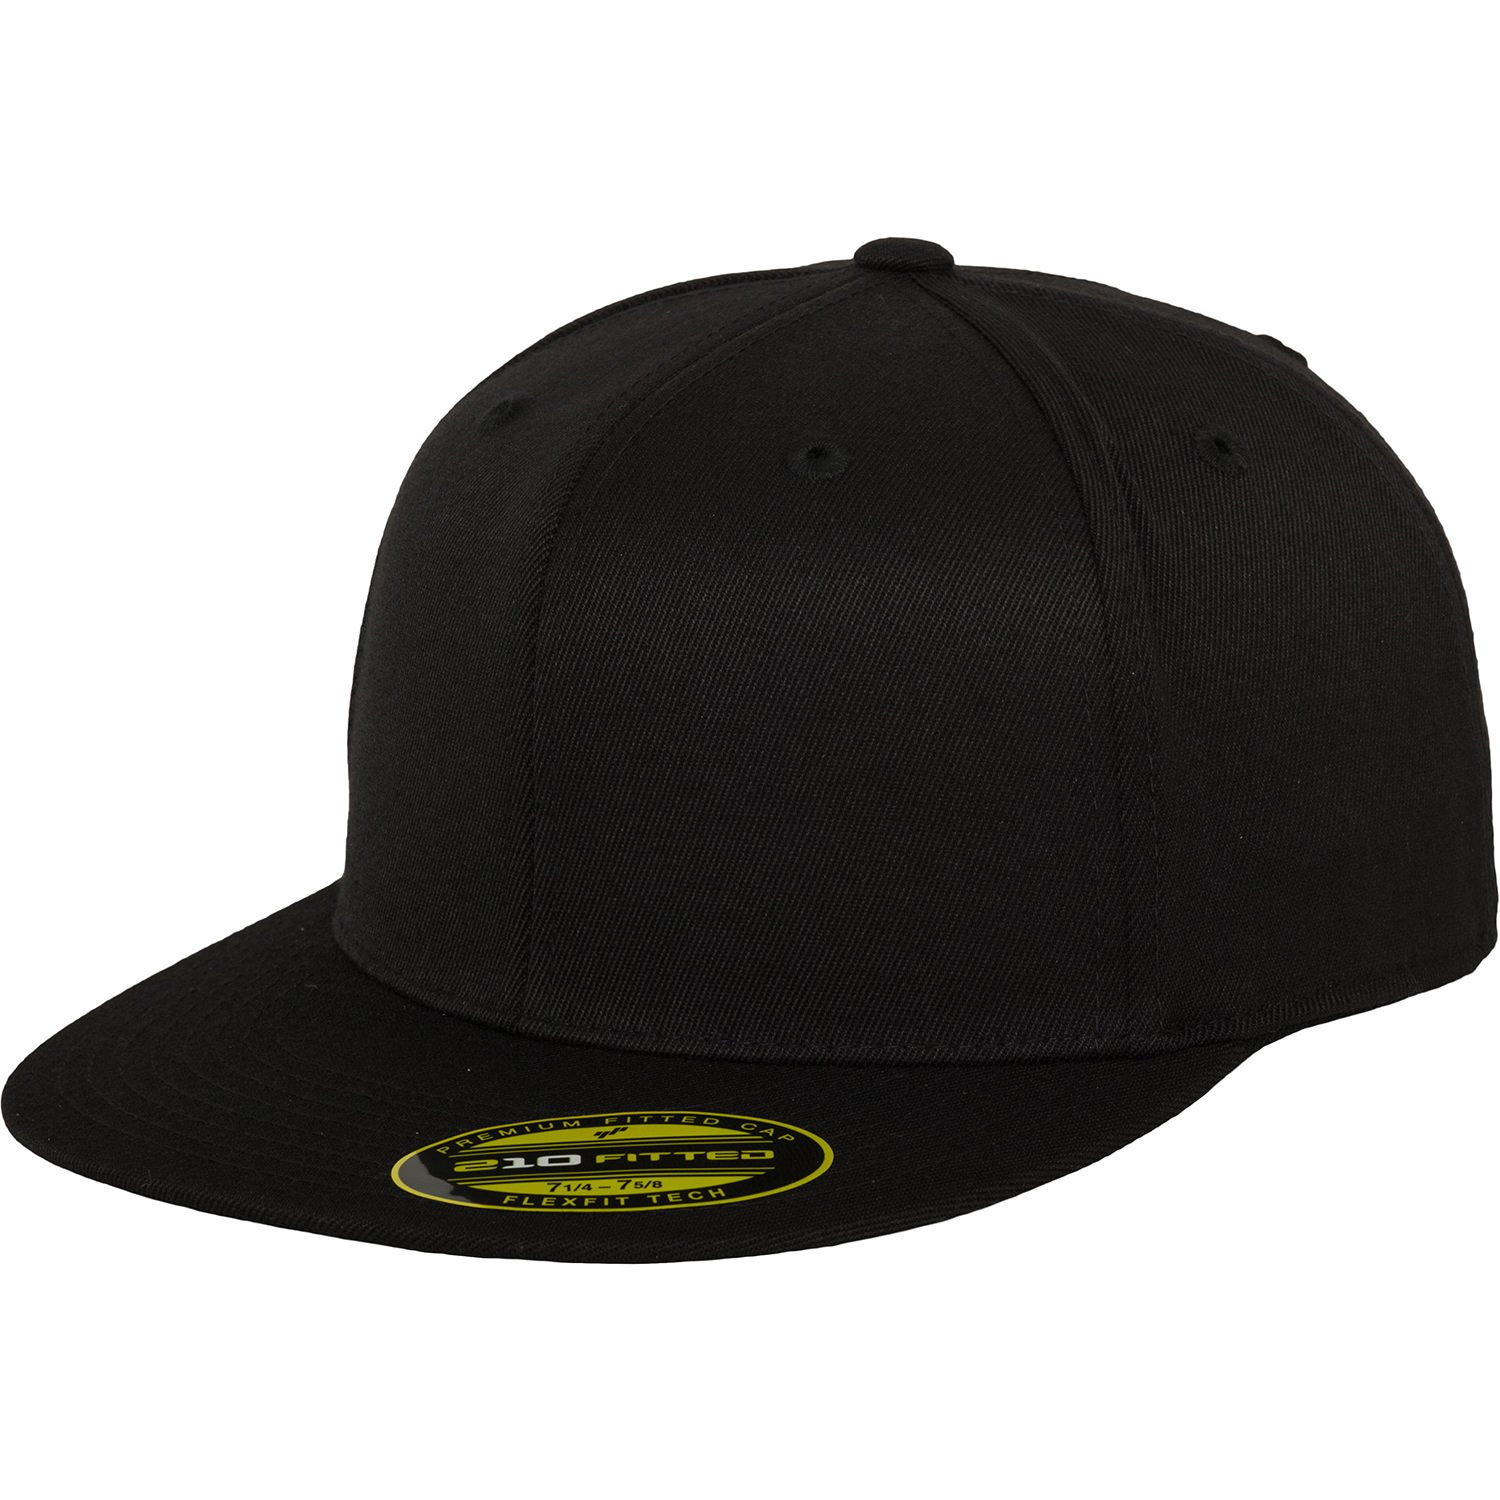 b5d2d24f2657f0 Flexfit Premium 210 Fitted Cap at Amazon Men's Clothing store: